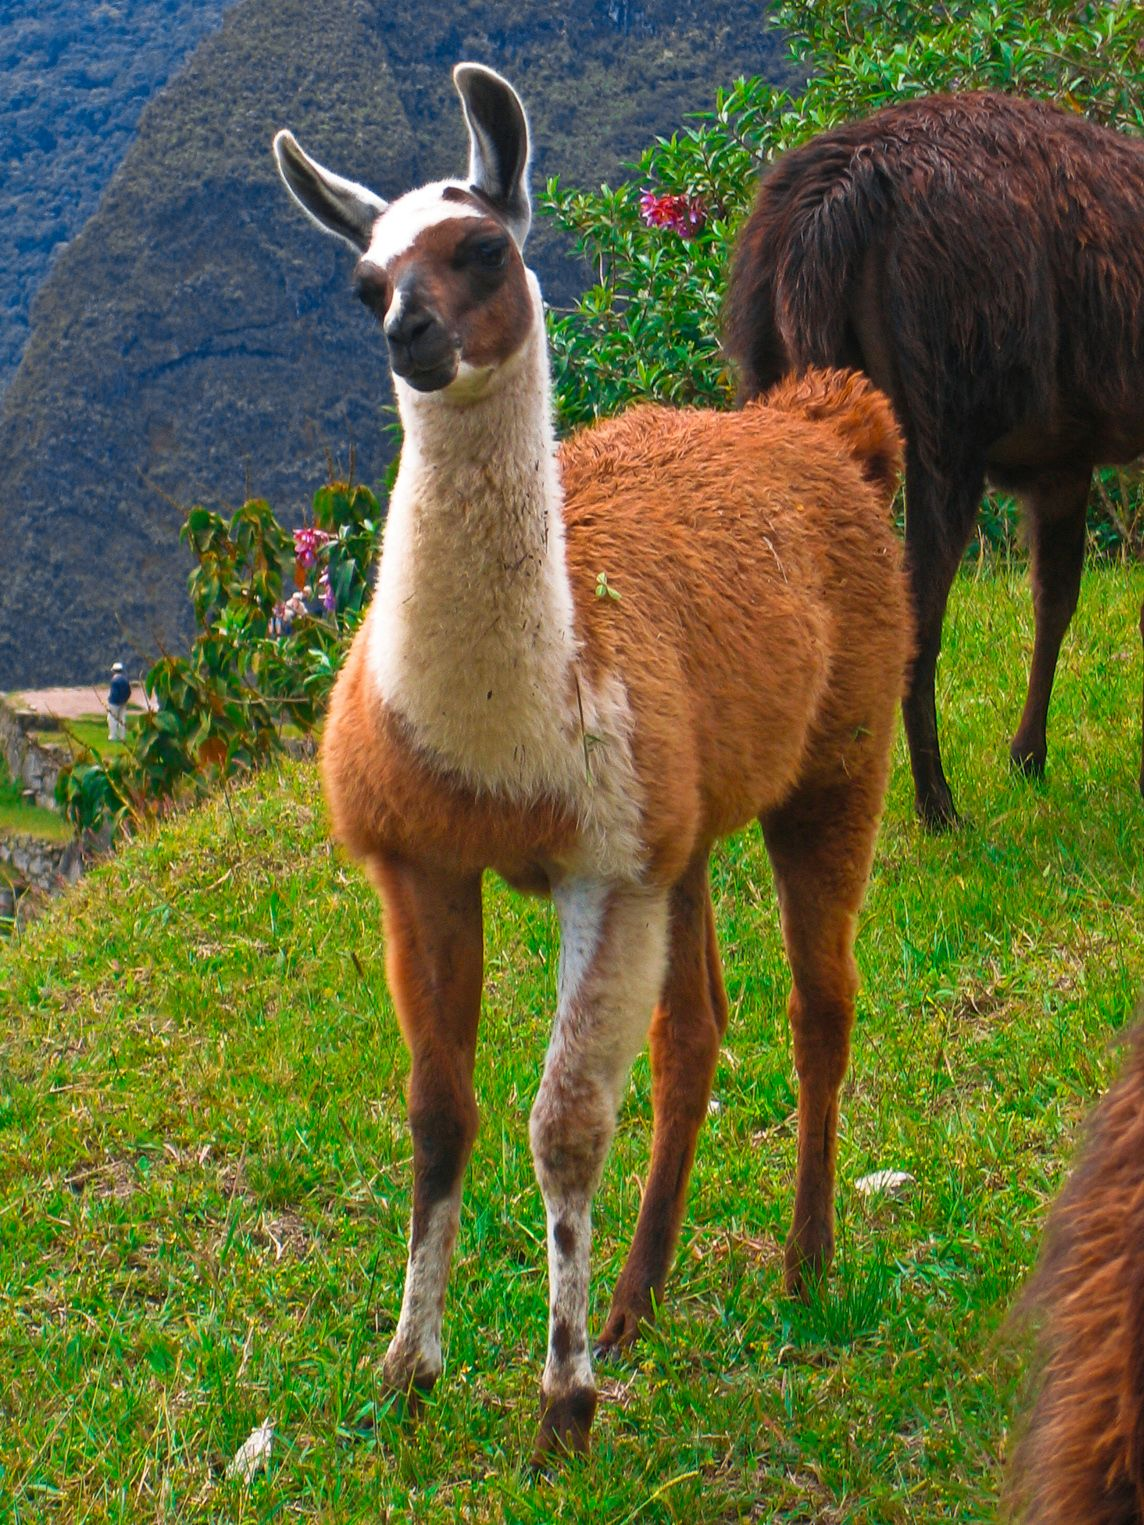 llama spirit: following your heart and carrying your load through any situation